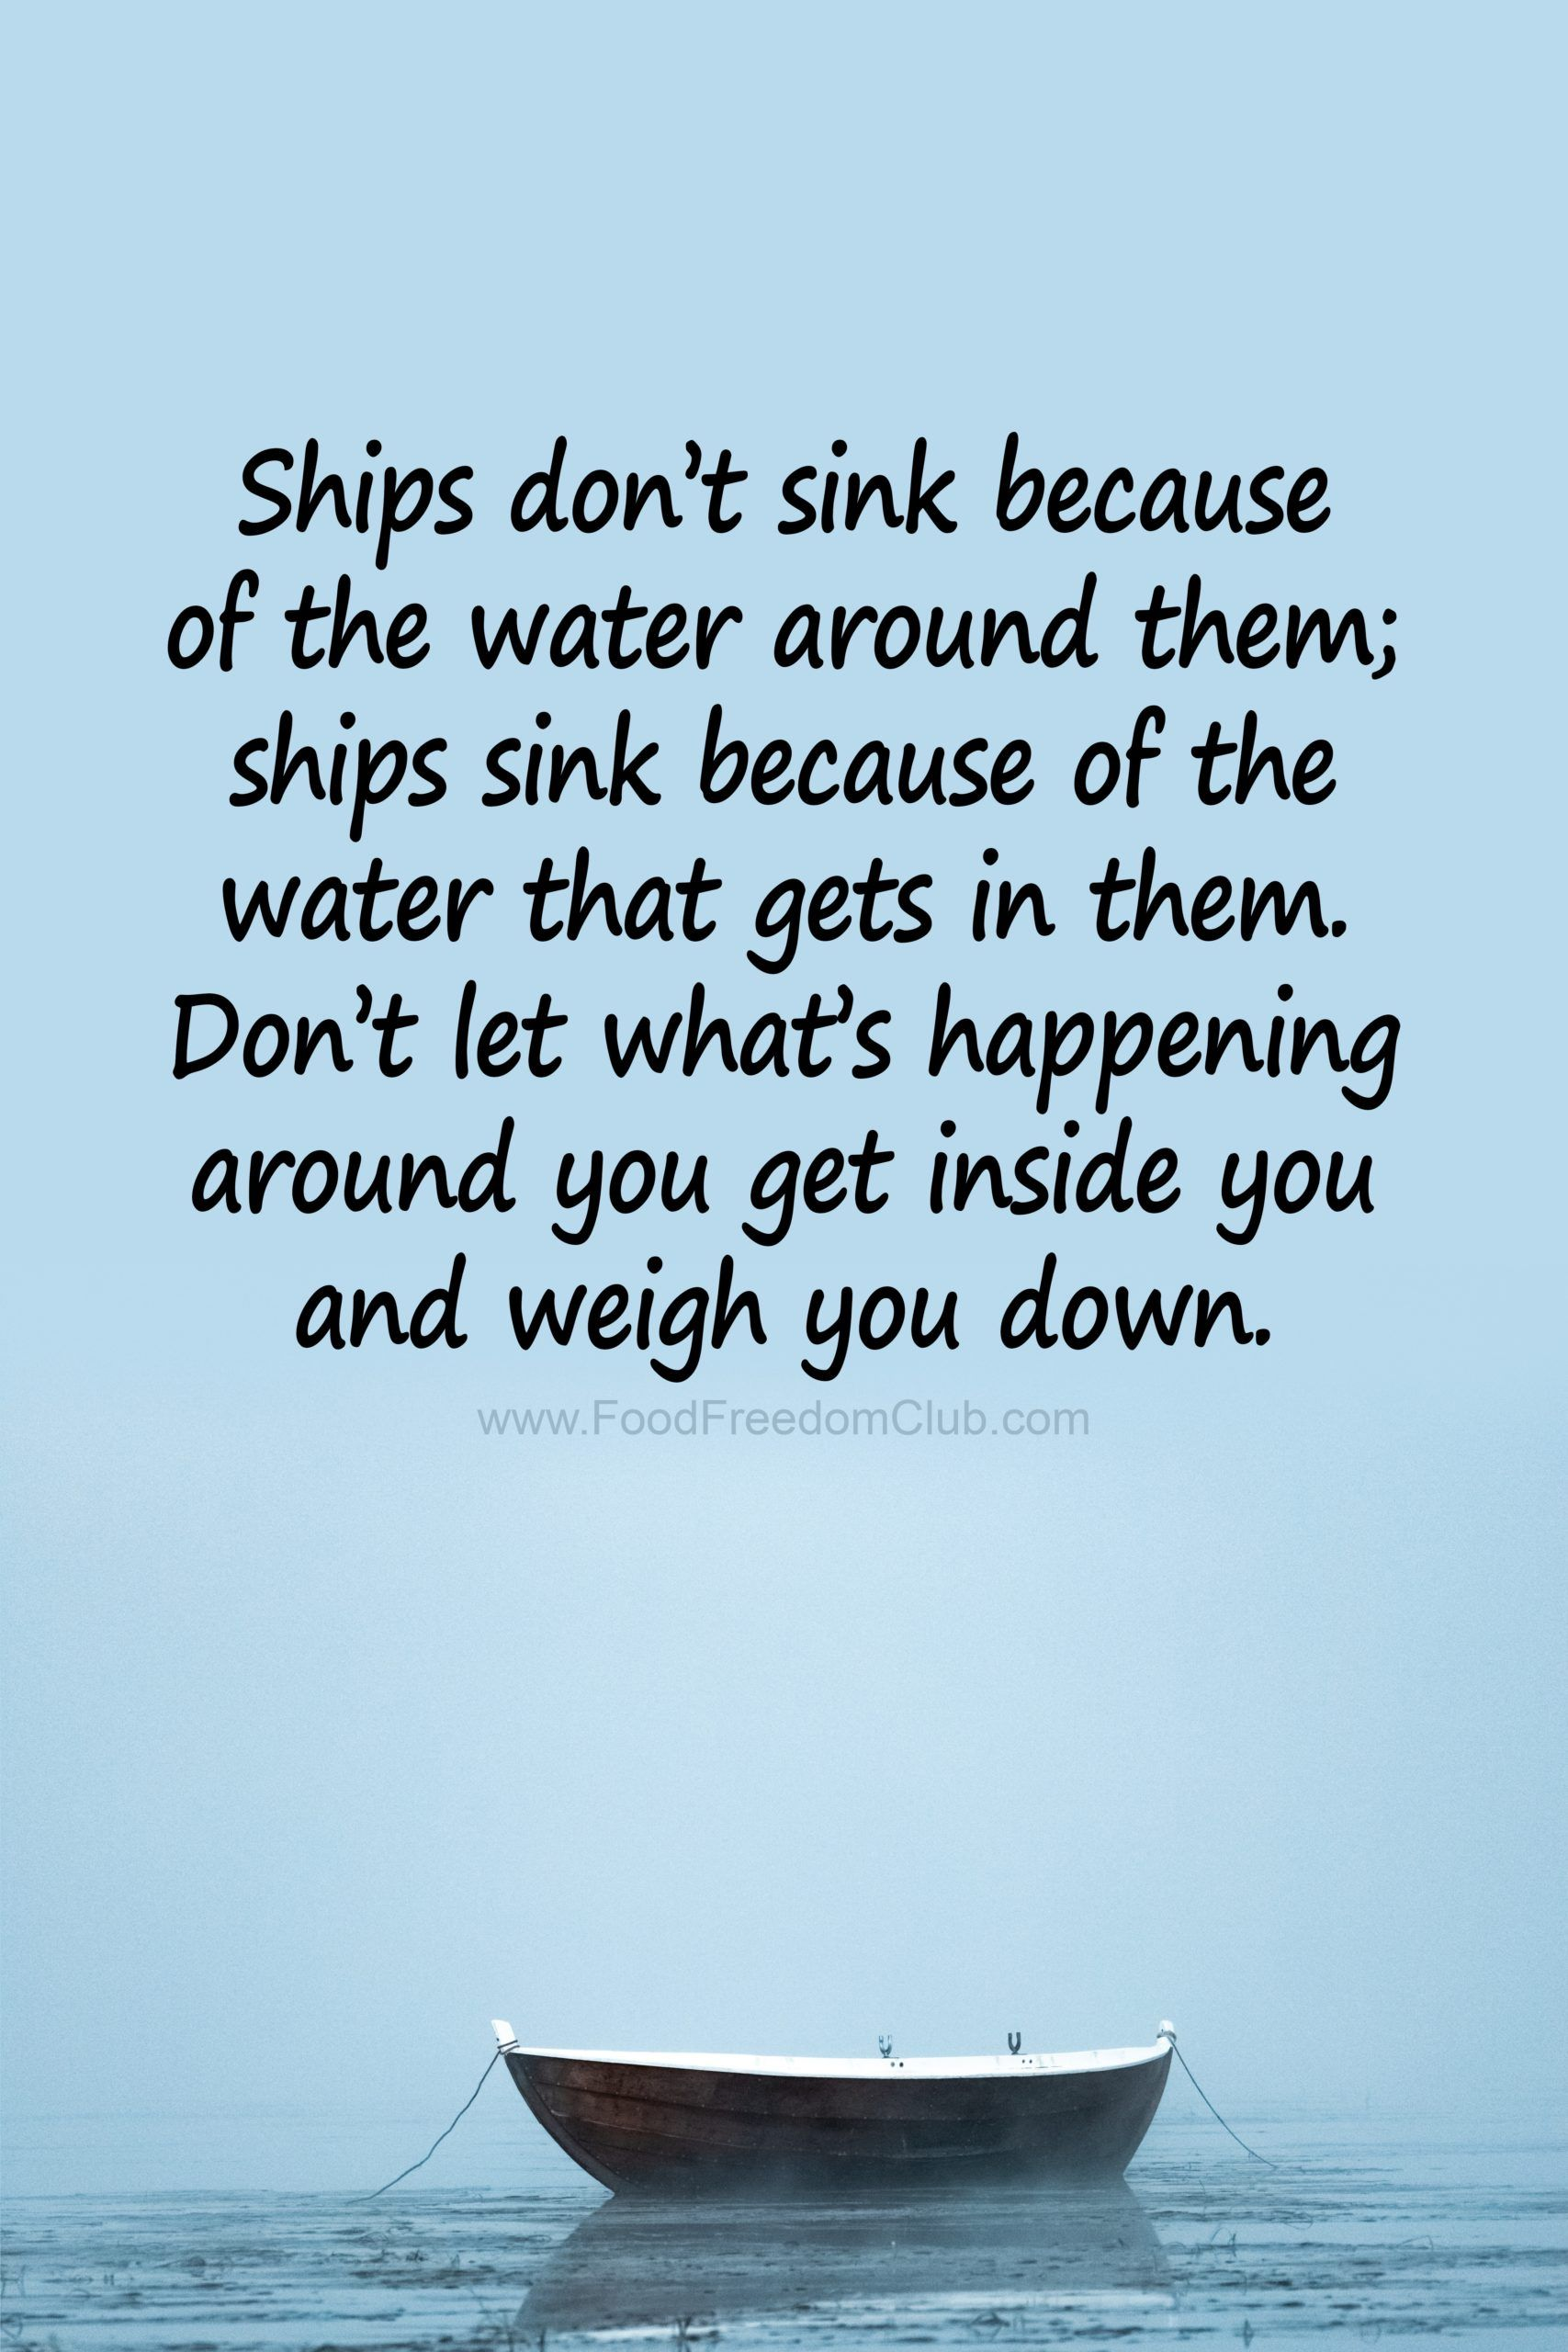 Work Stress Quotes Ships don't sink because of the water around them;